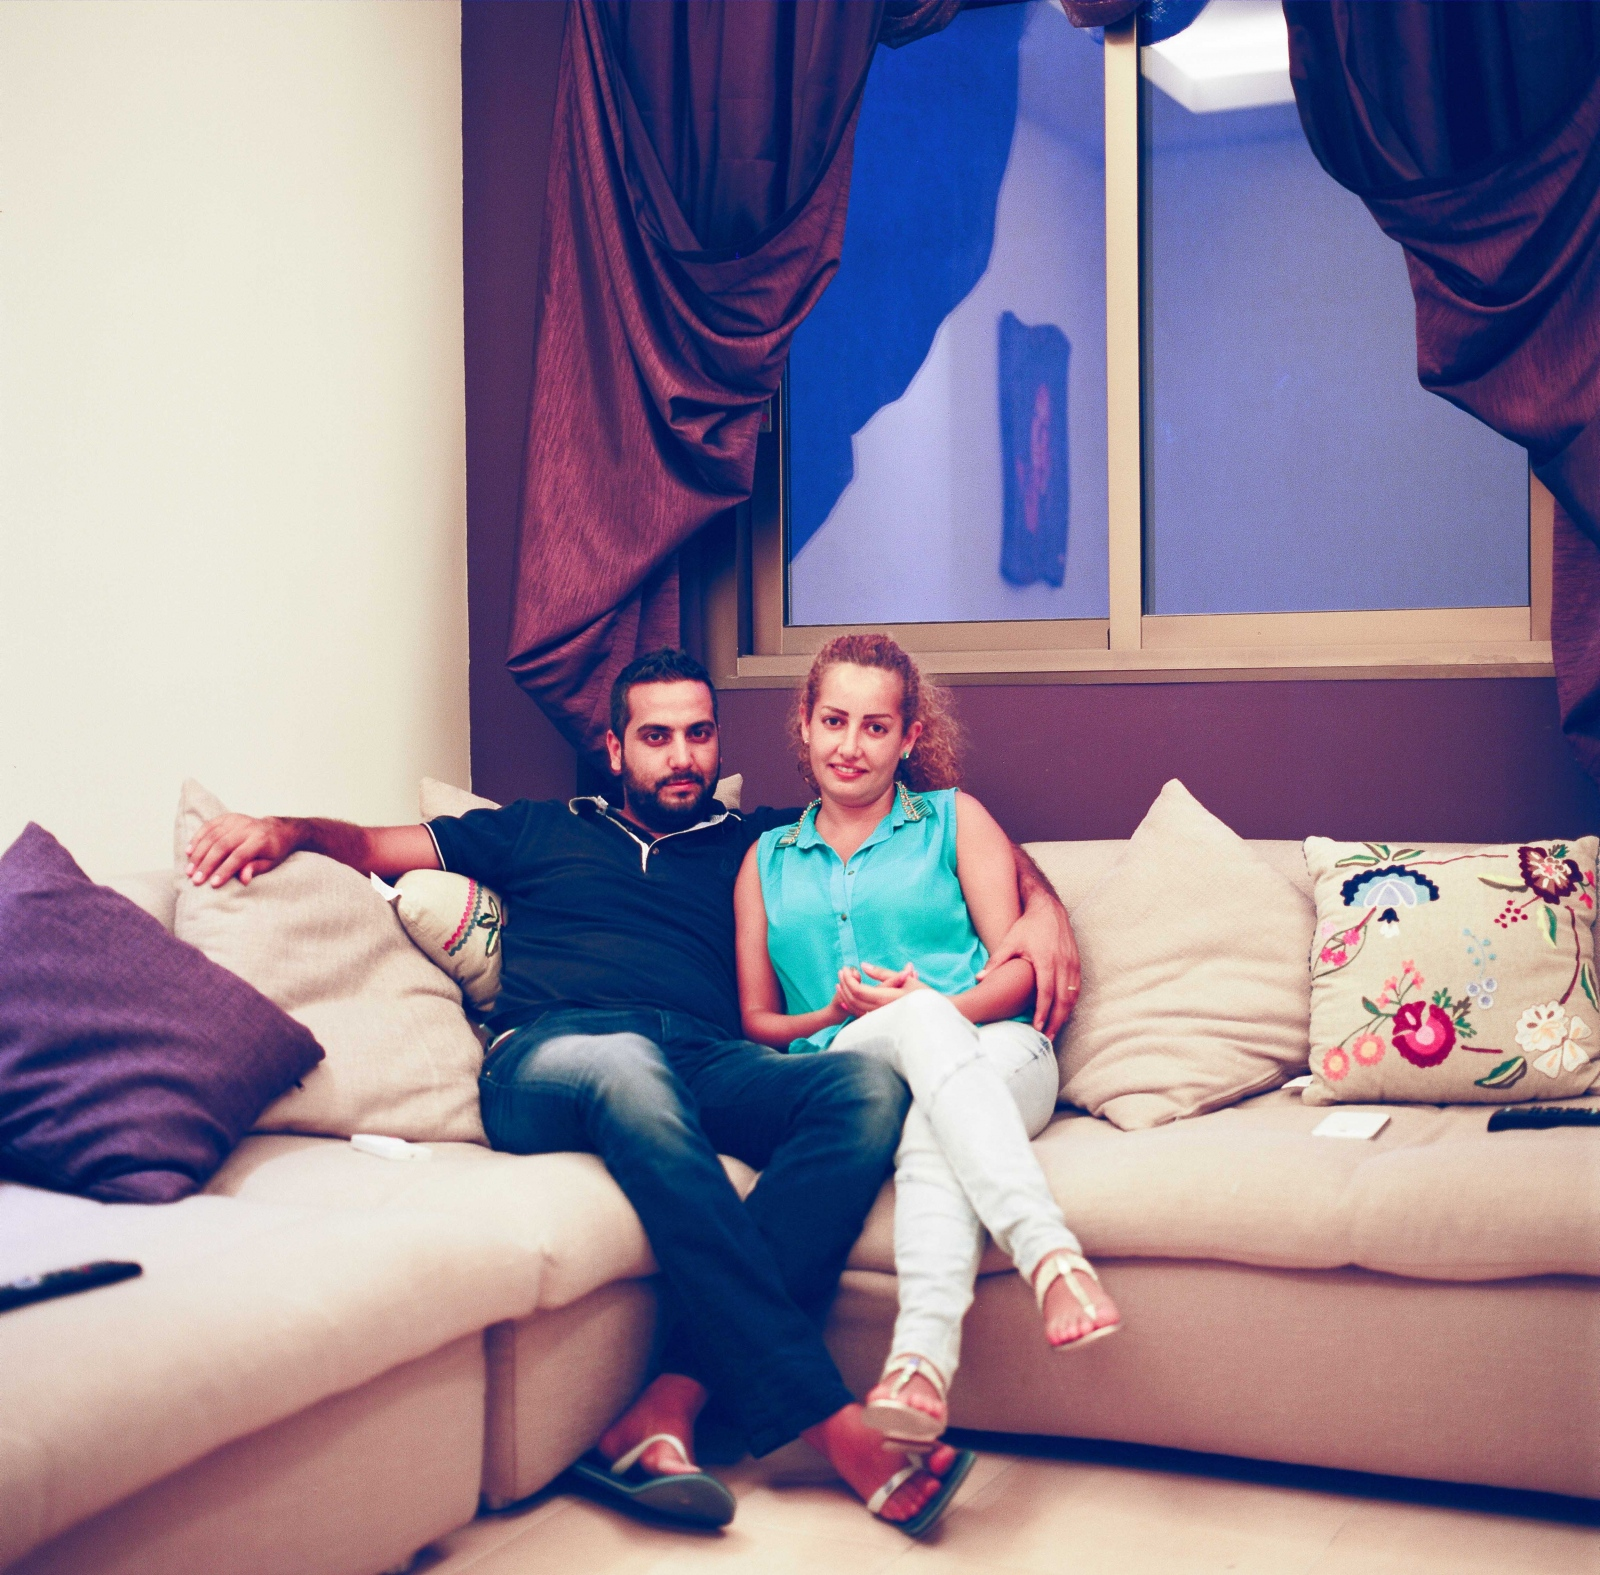 "Beirut, LEBANON, July 19, 2013: Chaza Khalil and Tony Dagher, pictured inside their apartment in Beirut Jdeideh, are the second Lebanese couple to have a civil marriage in their home country.""We have a three-minute video clip ready that will be broadcasted on Lebanese TV once our contract got approved. We had a videographer with us recording the whole process; so that other couples know which steps they have to take. It's like a manual for civil marriage in Lebanon, if you like"", Chaza says."